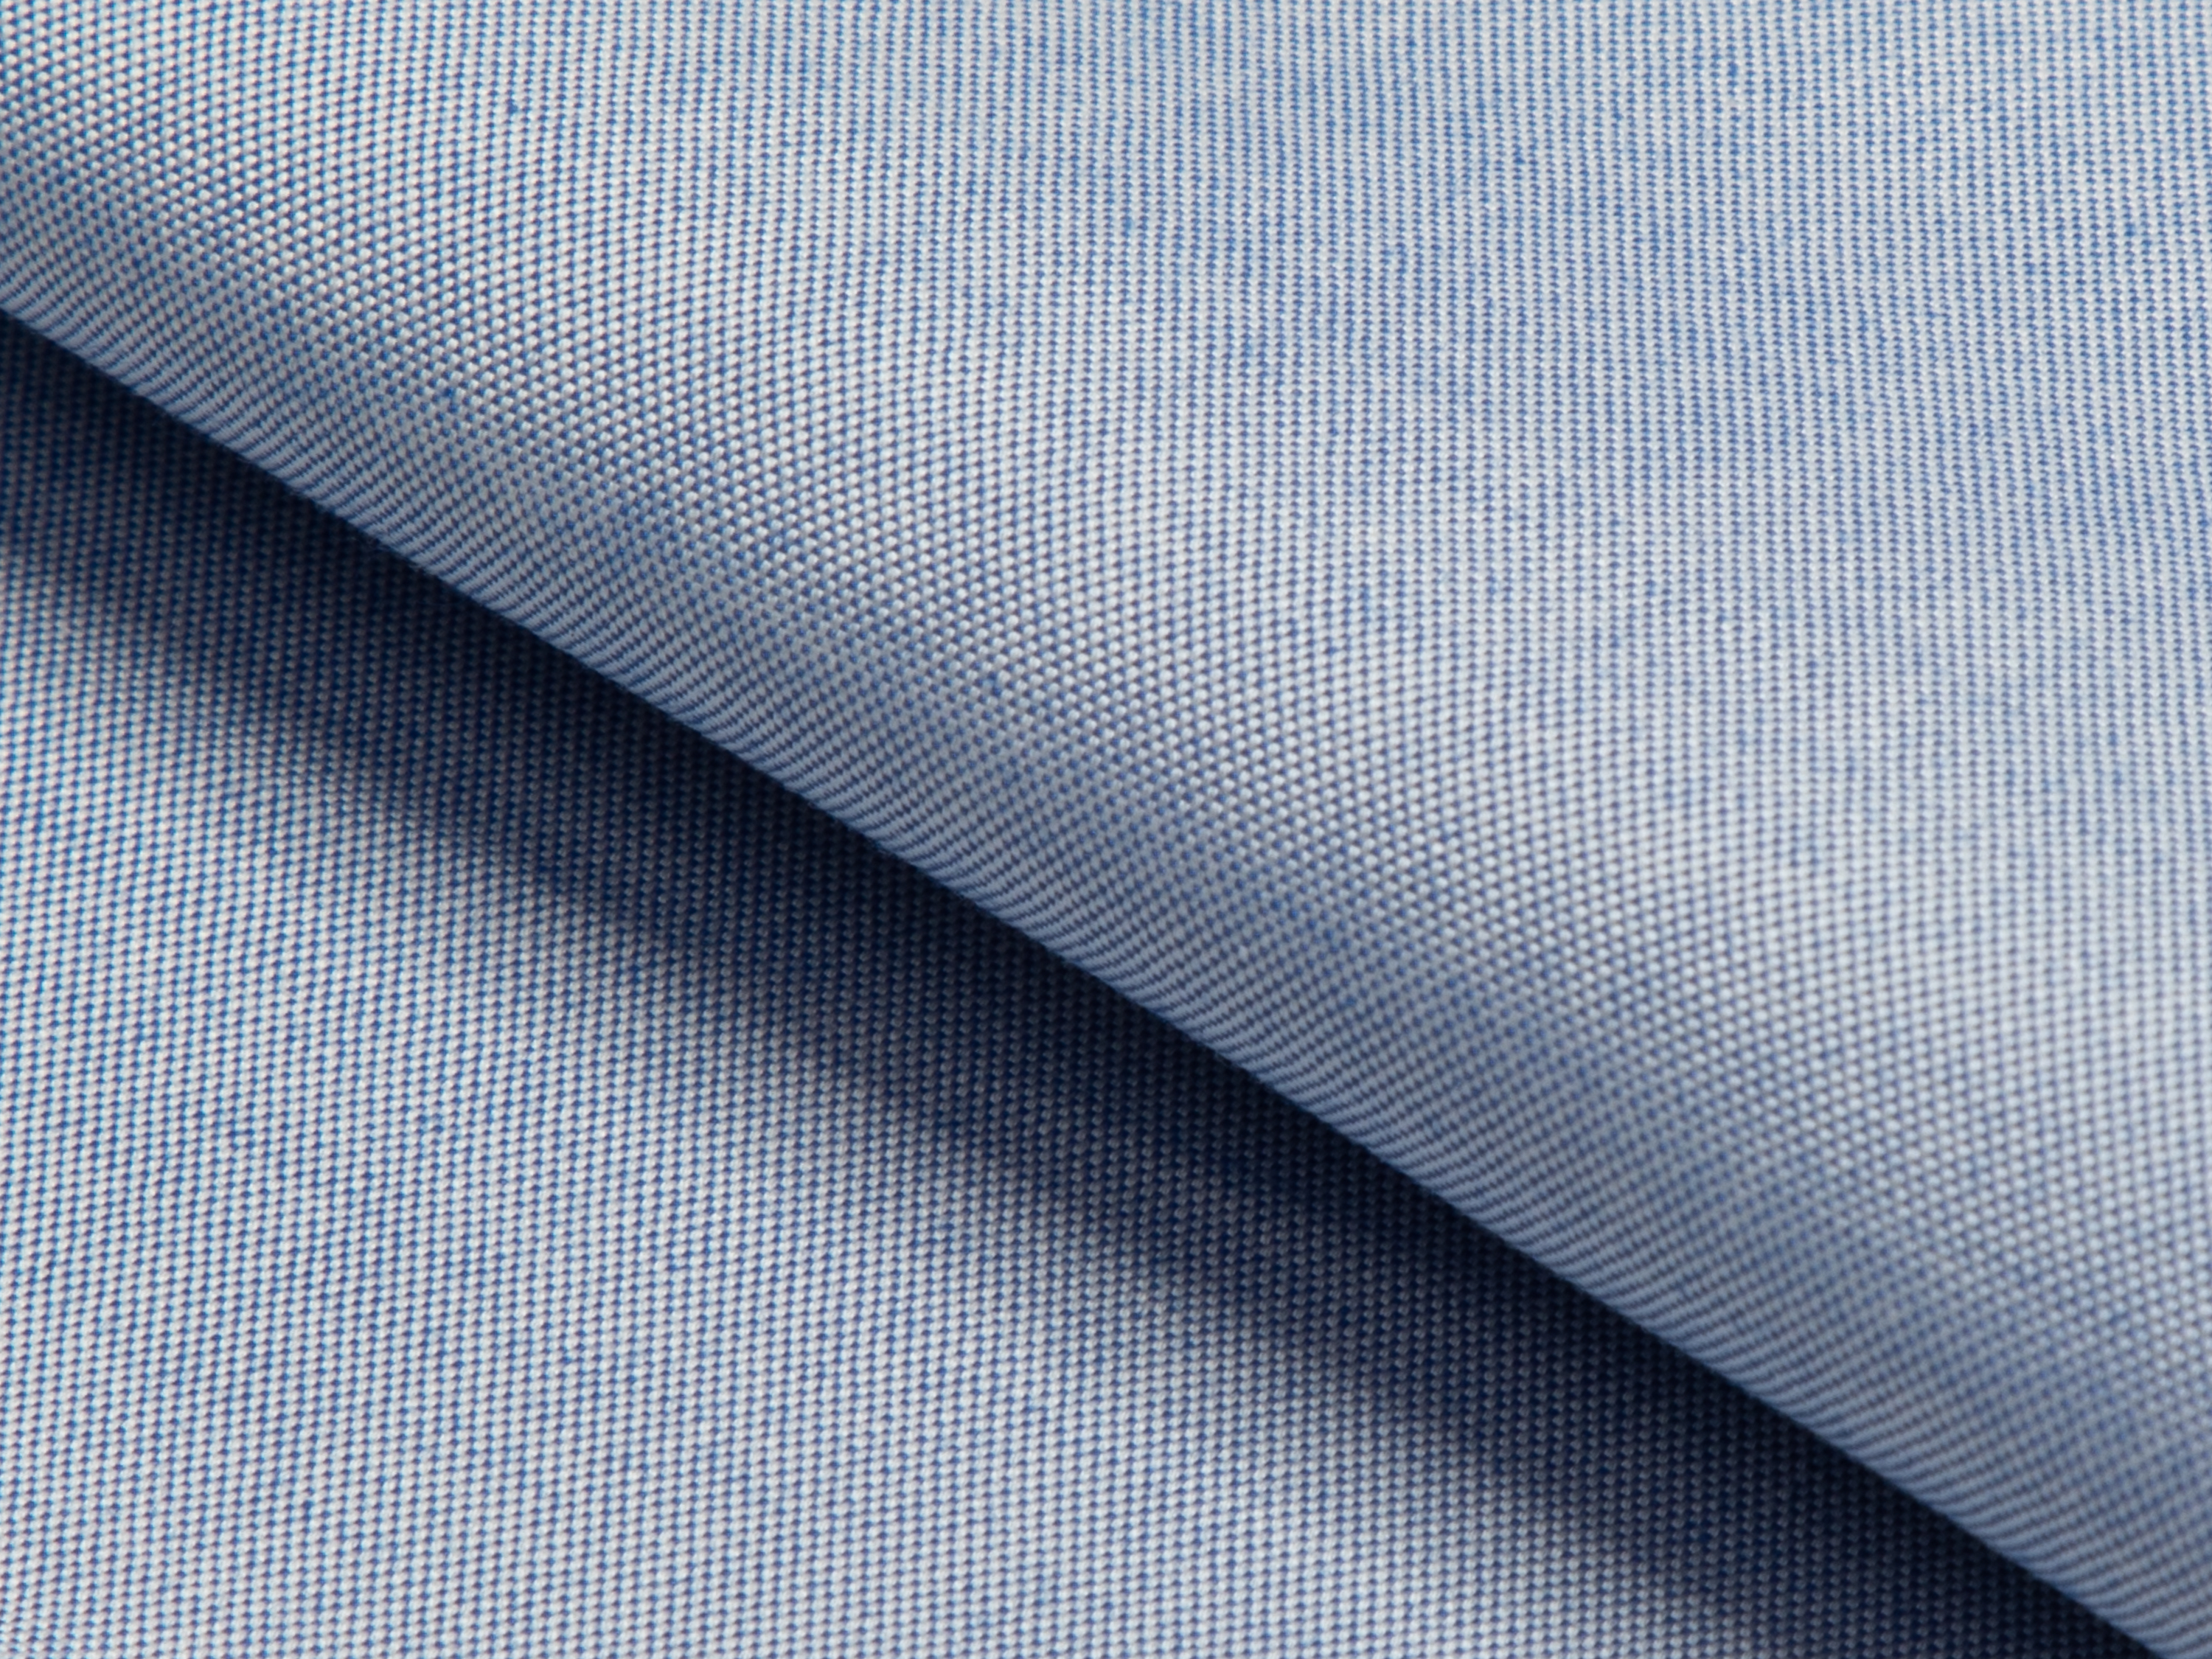 Buy tailor made shirts online - PINPOINT LUXURY - Pinpoint Denim Blue